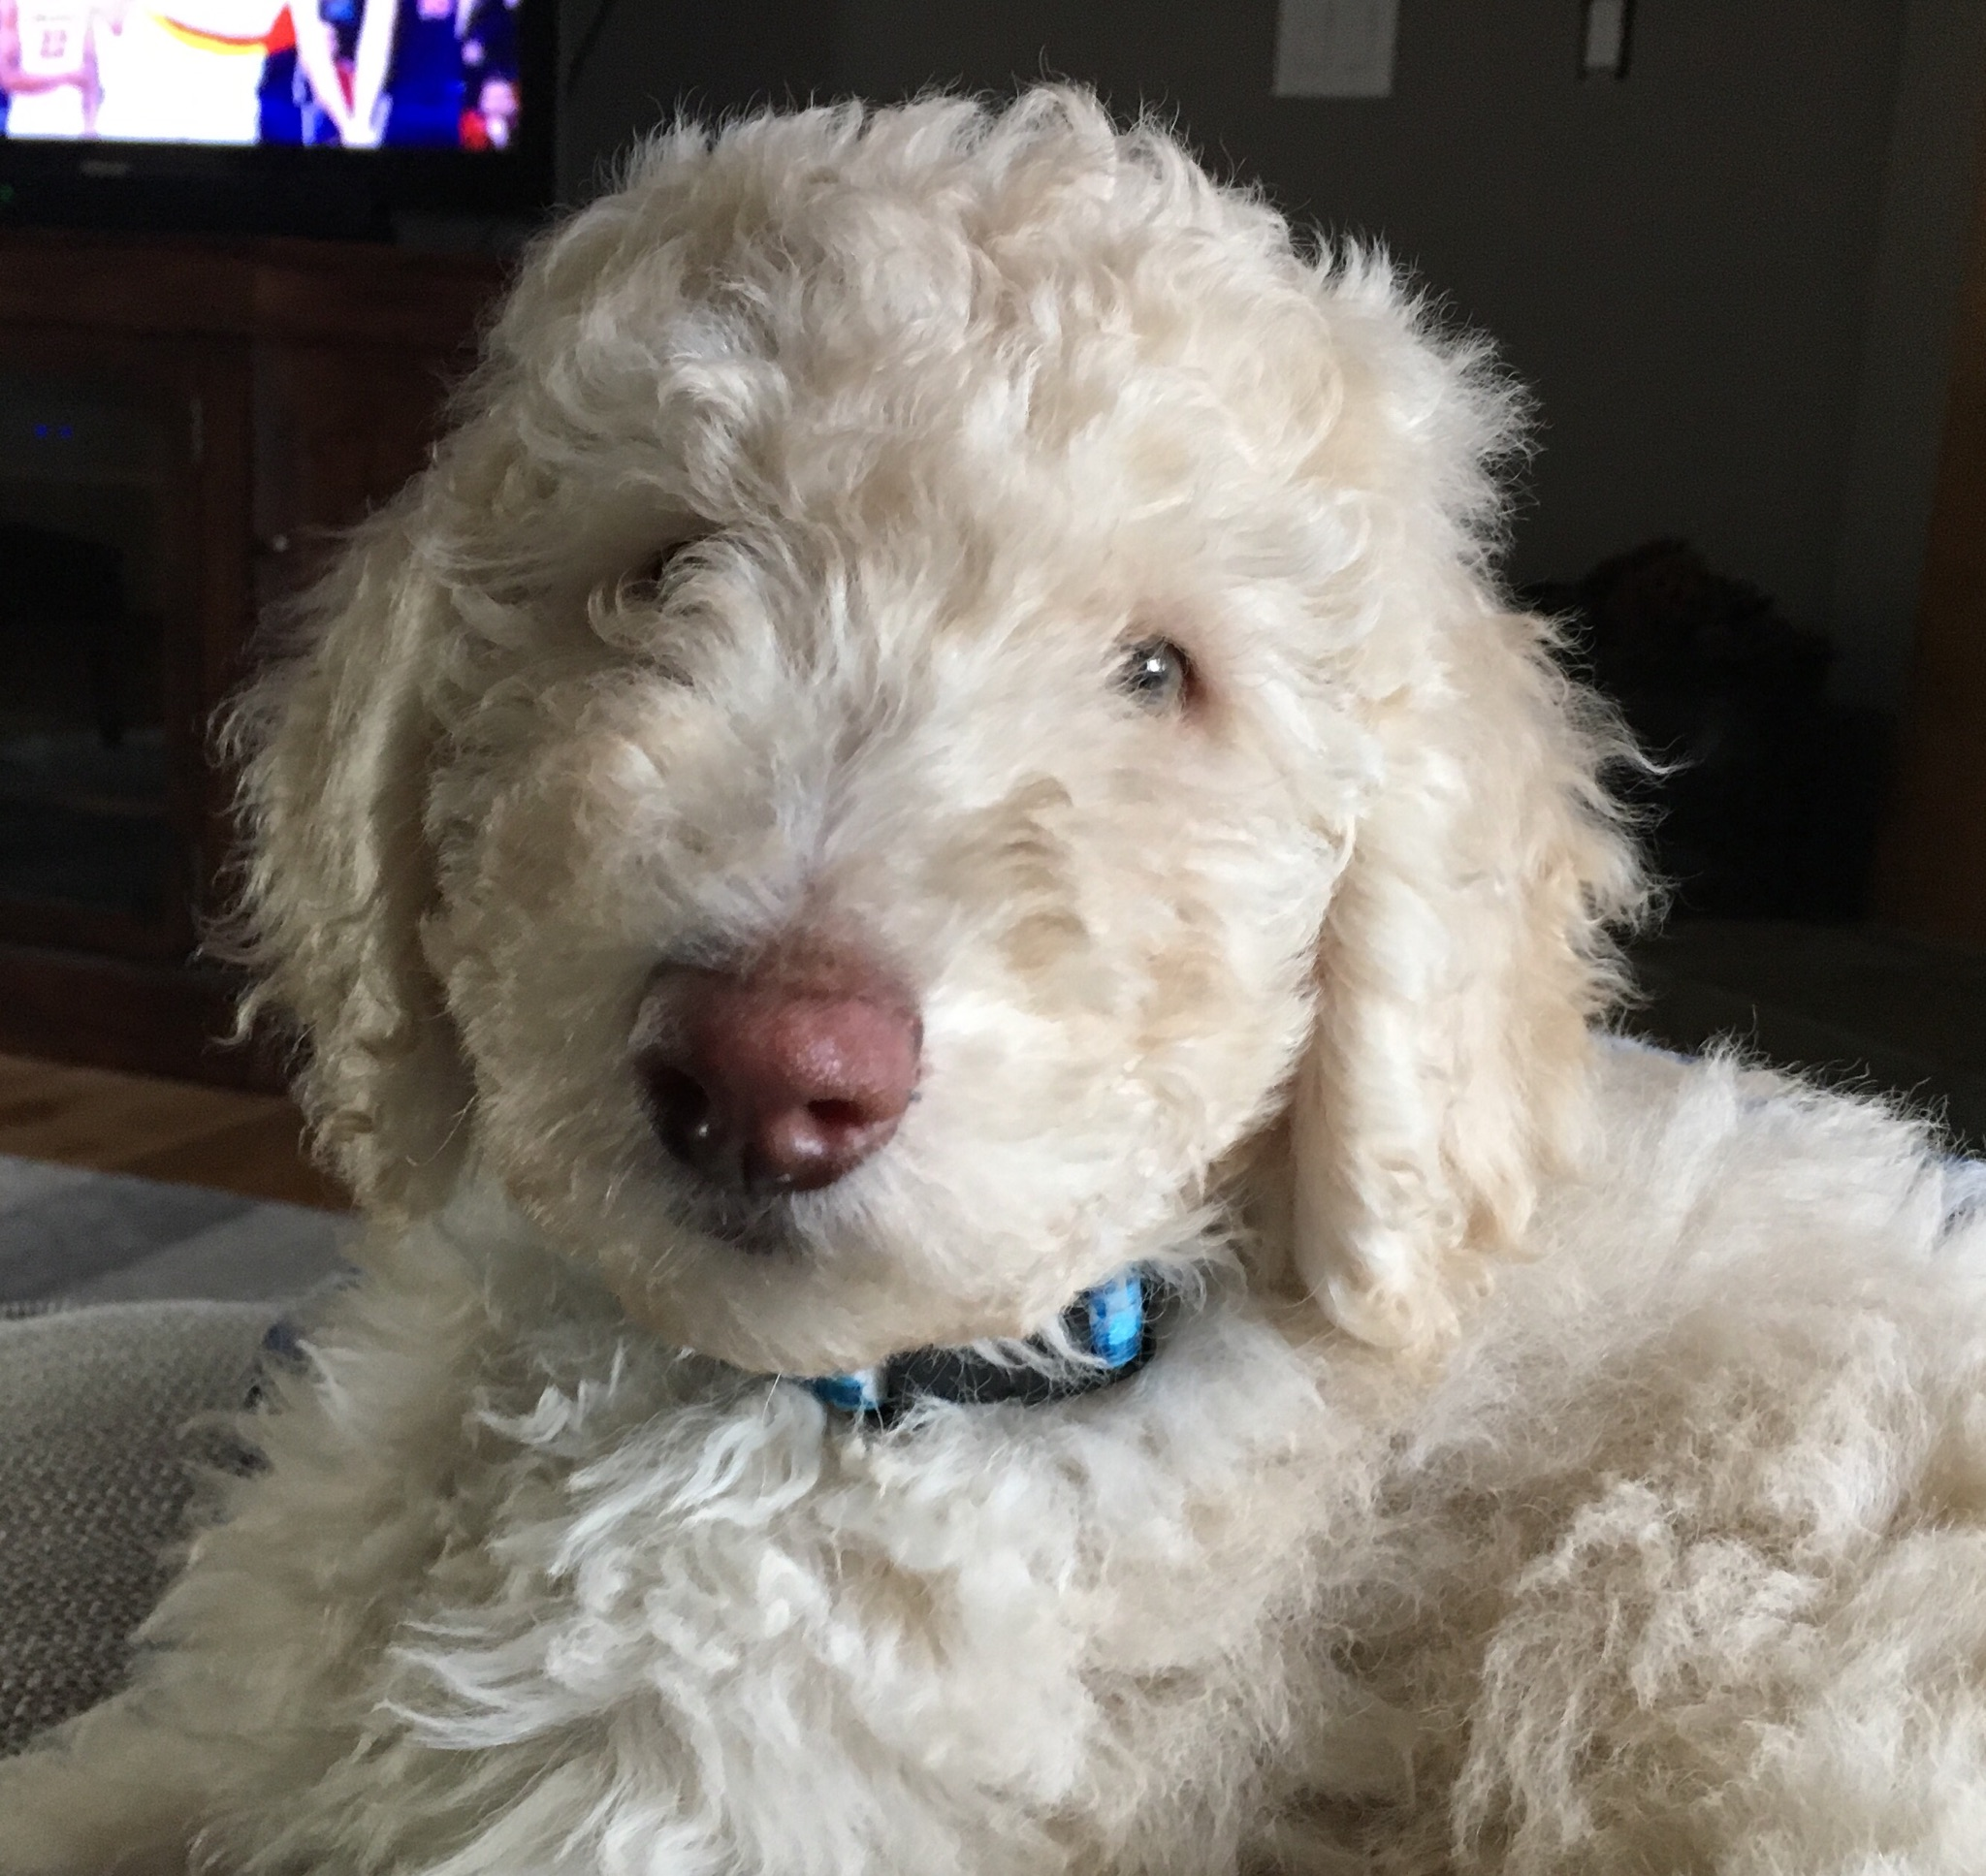 Treating Coccidia With 12 5 Sulfadimethoxine And Dyne In Dogs And Puppies Dosage Chart And Instructions Aussiedoodle And Labradoodle Puppies Best Labradoodle Breeders In Washington State Portland Oregon